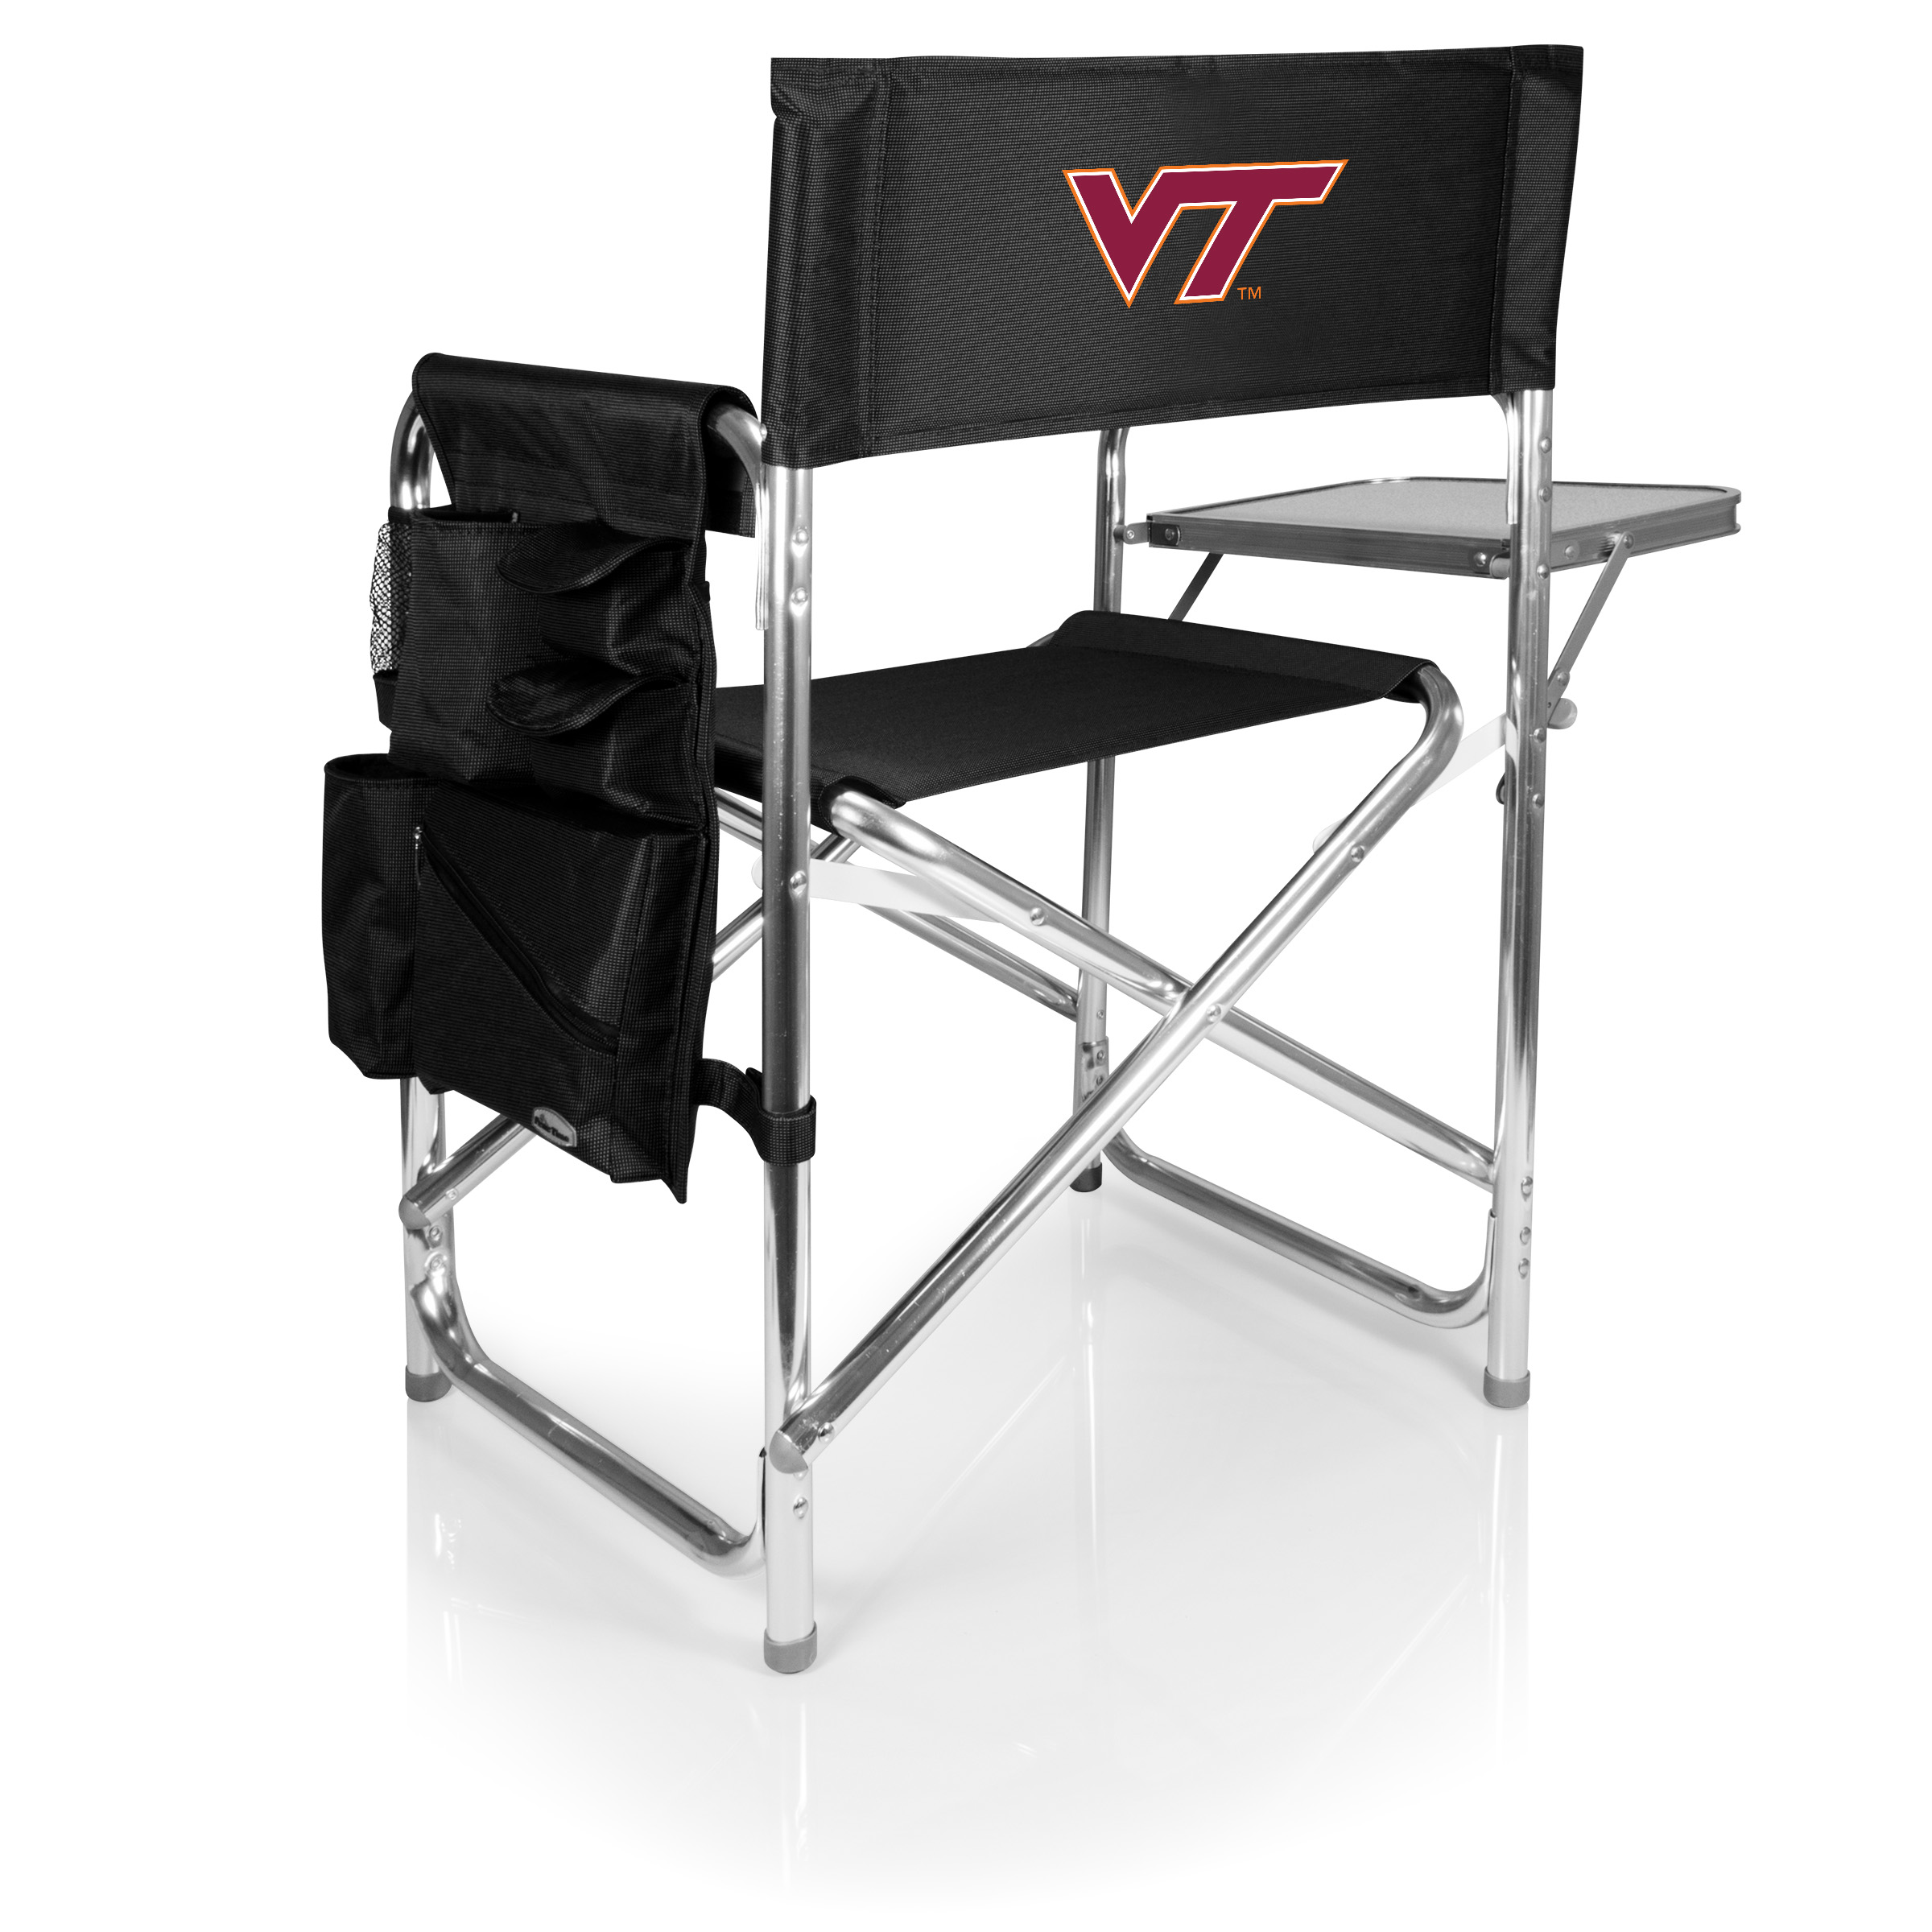 Sturdy Camping Chair Sports Chair Black Virginia Tech Embroidered